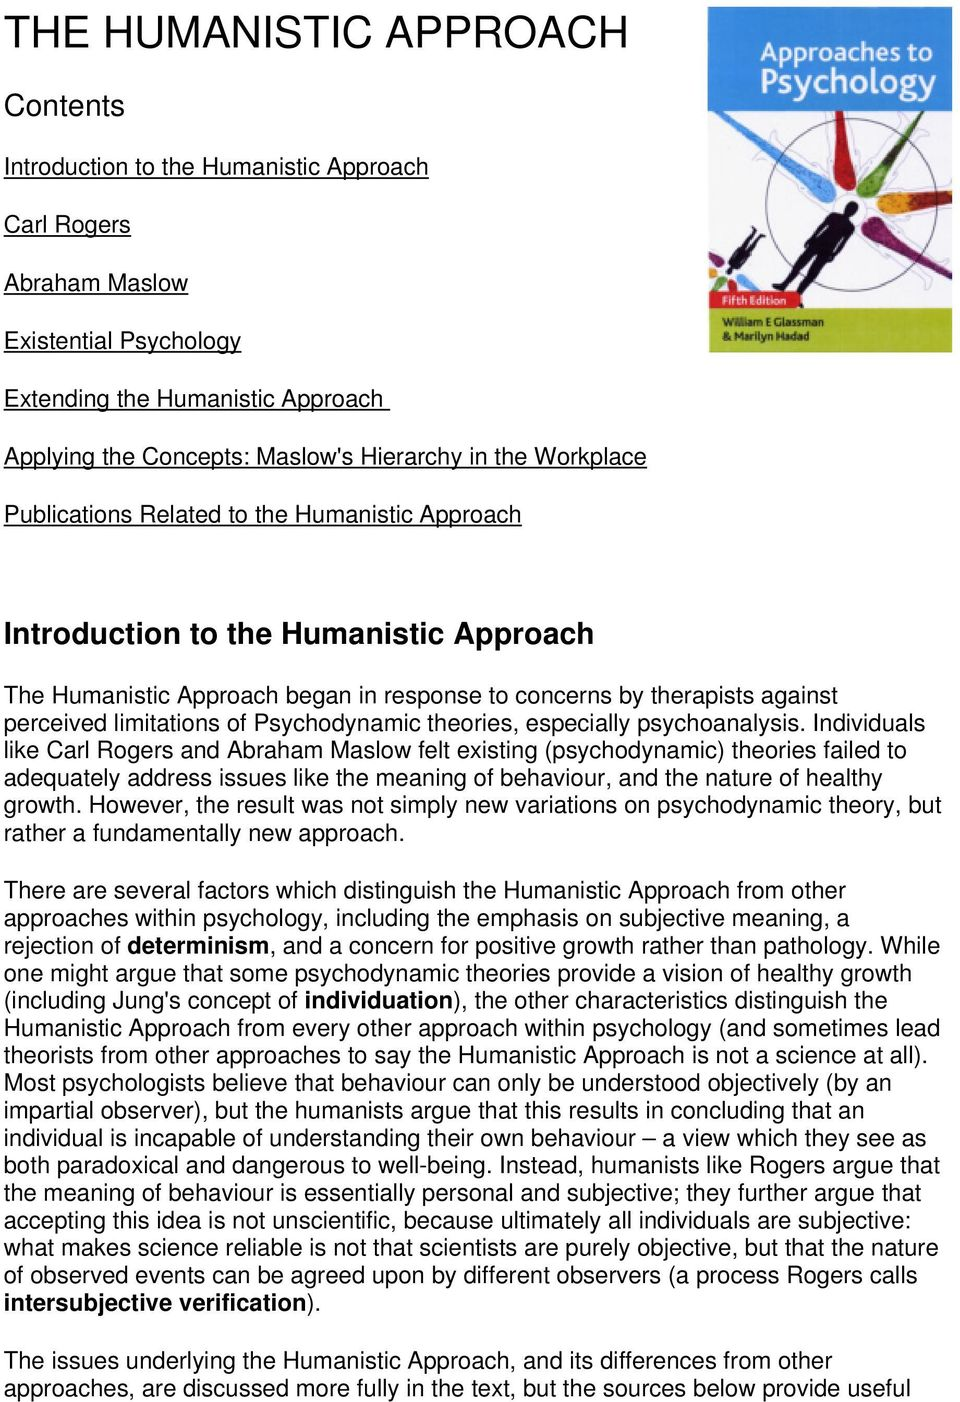 limitations of the humanistic approach